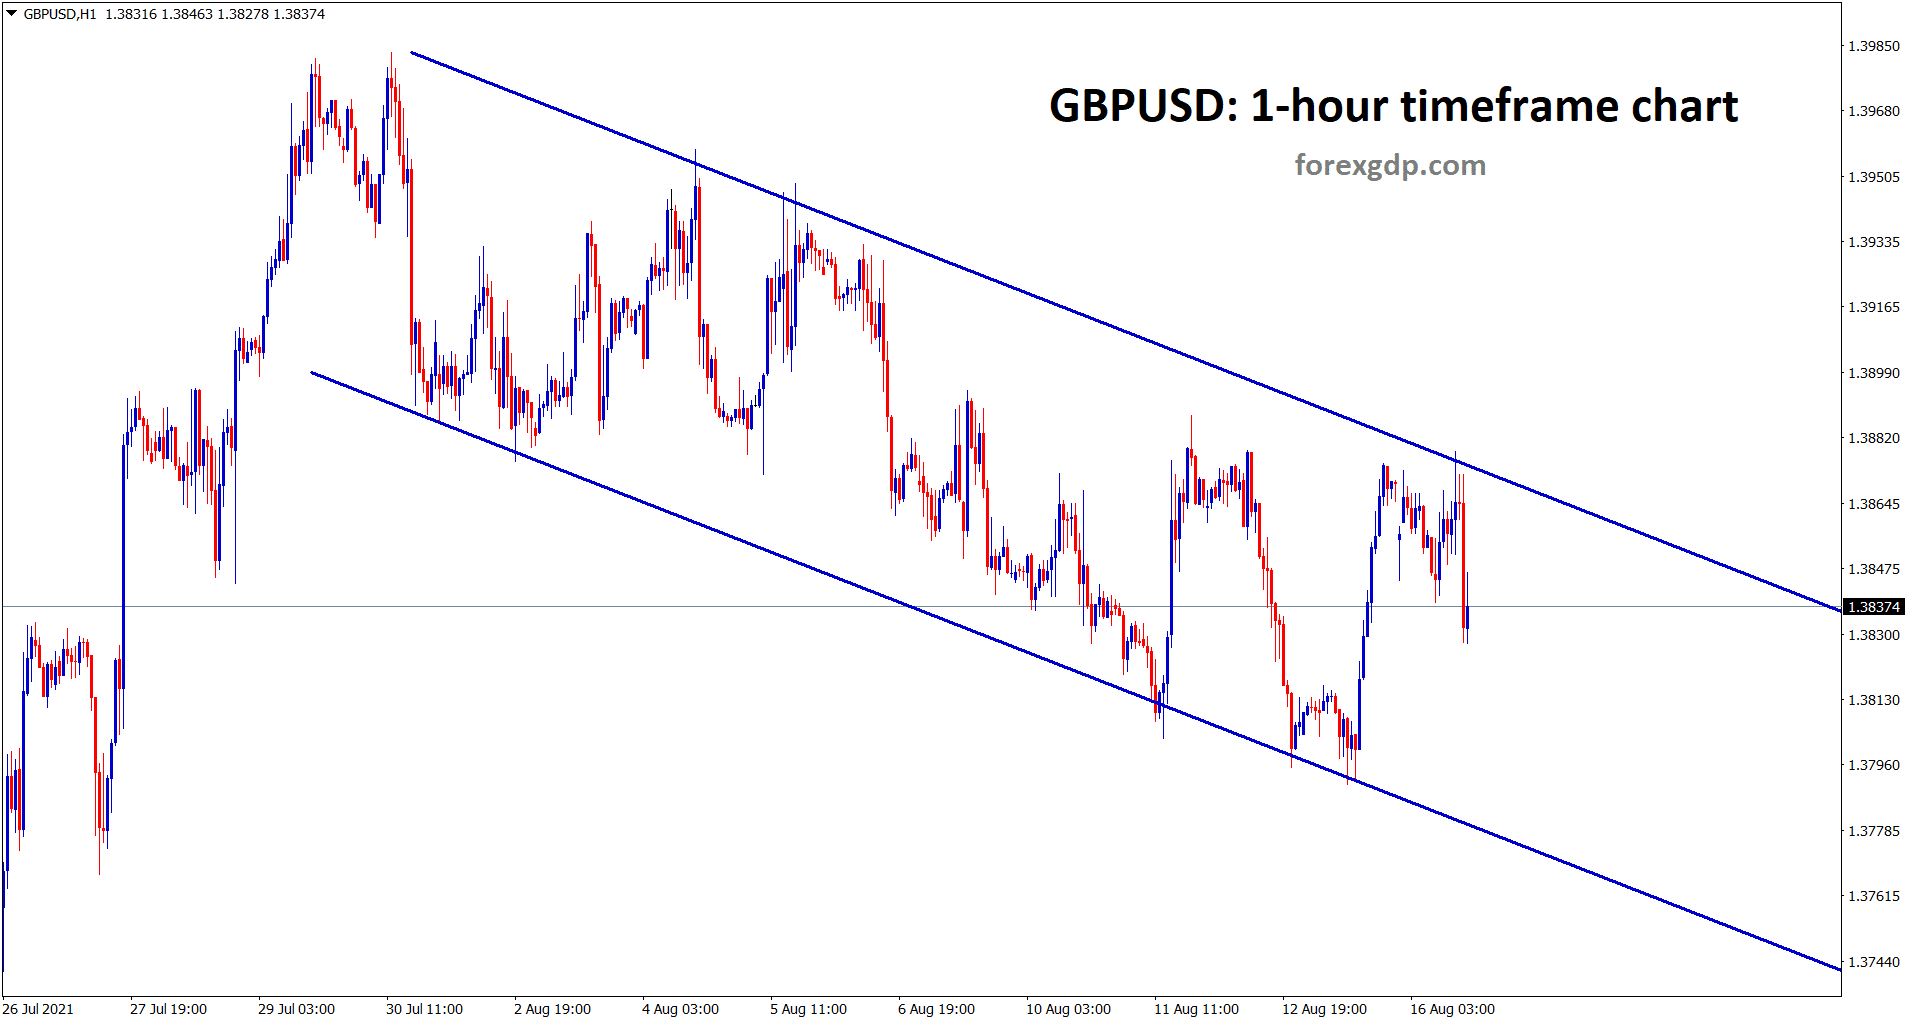 GBPUSD is moving in a descending channel range